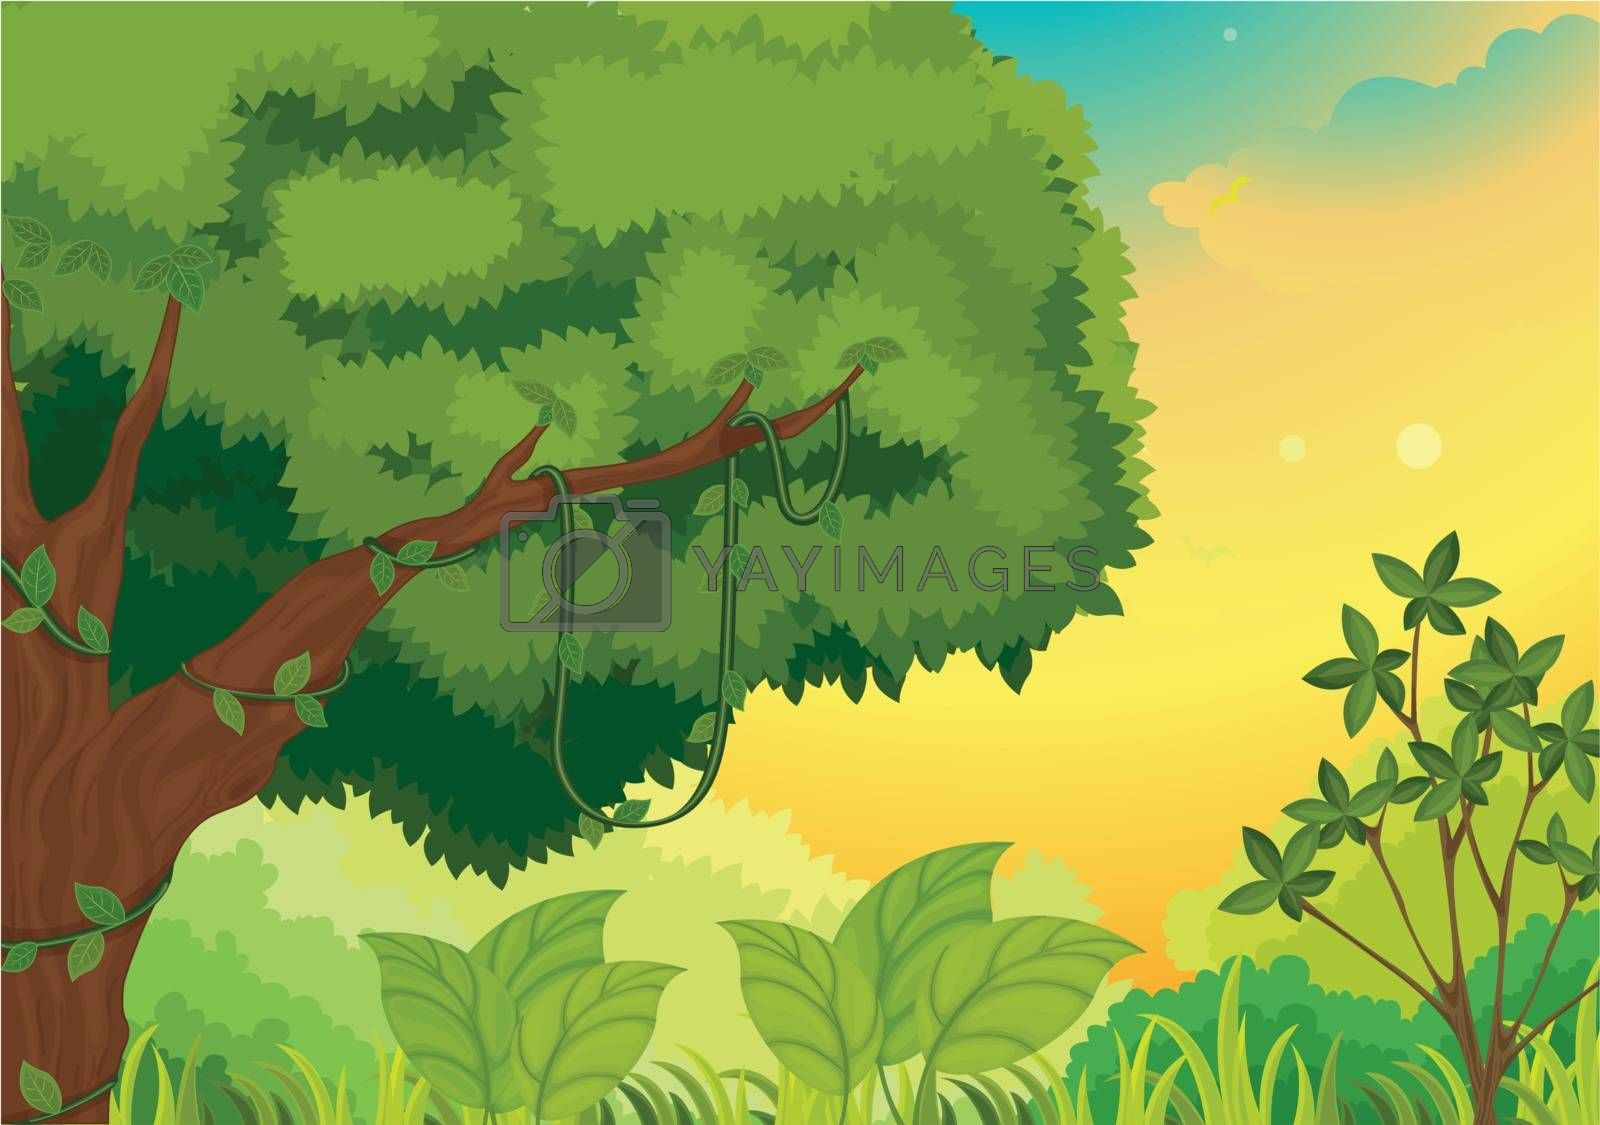 Illustration of a nature background